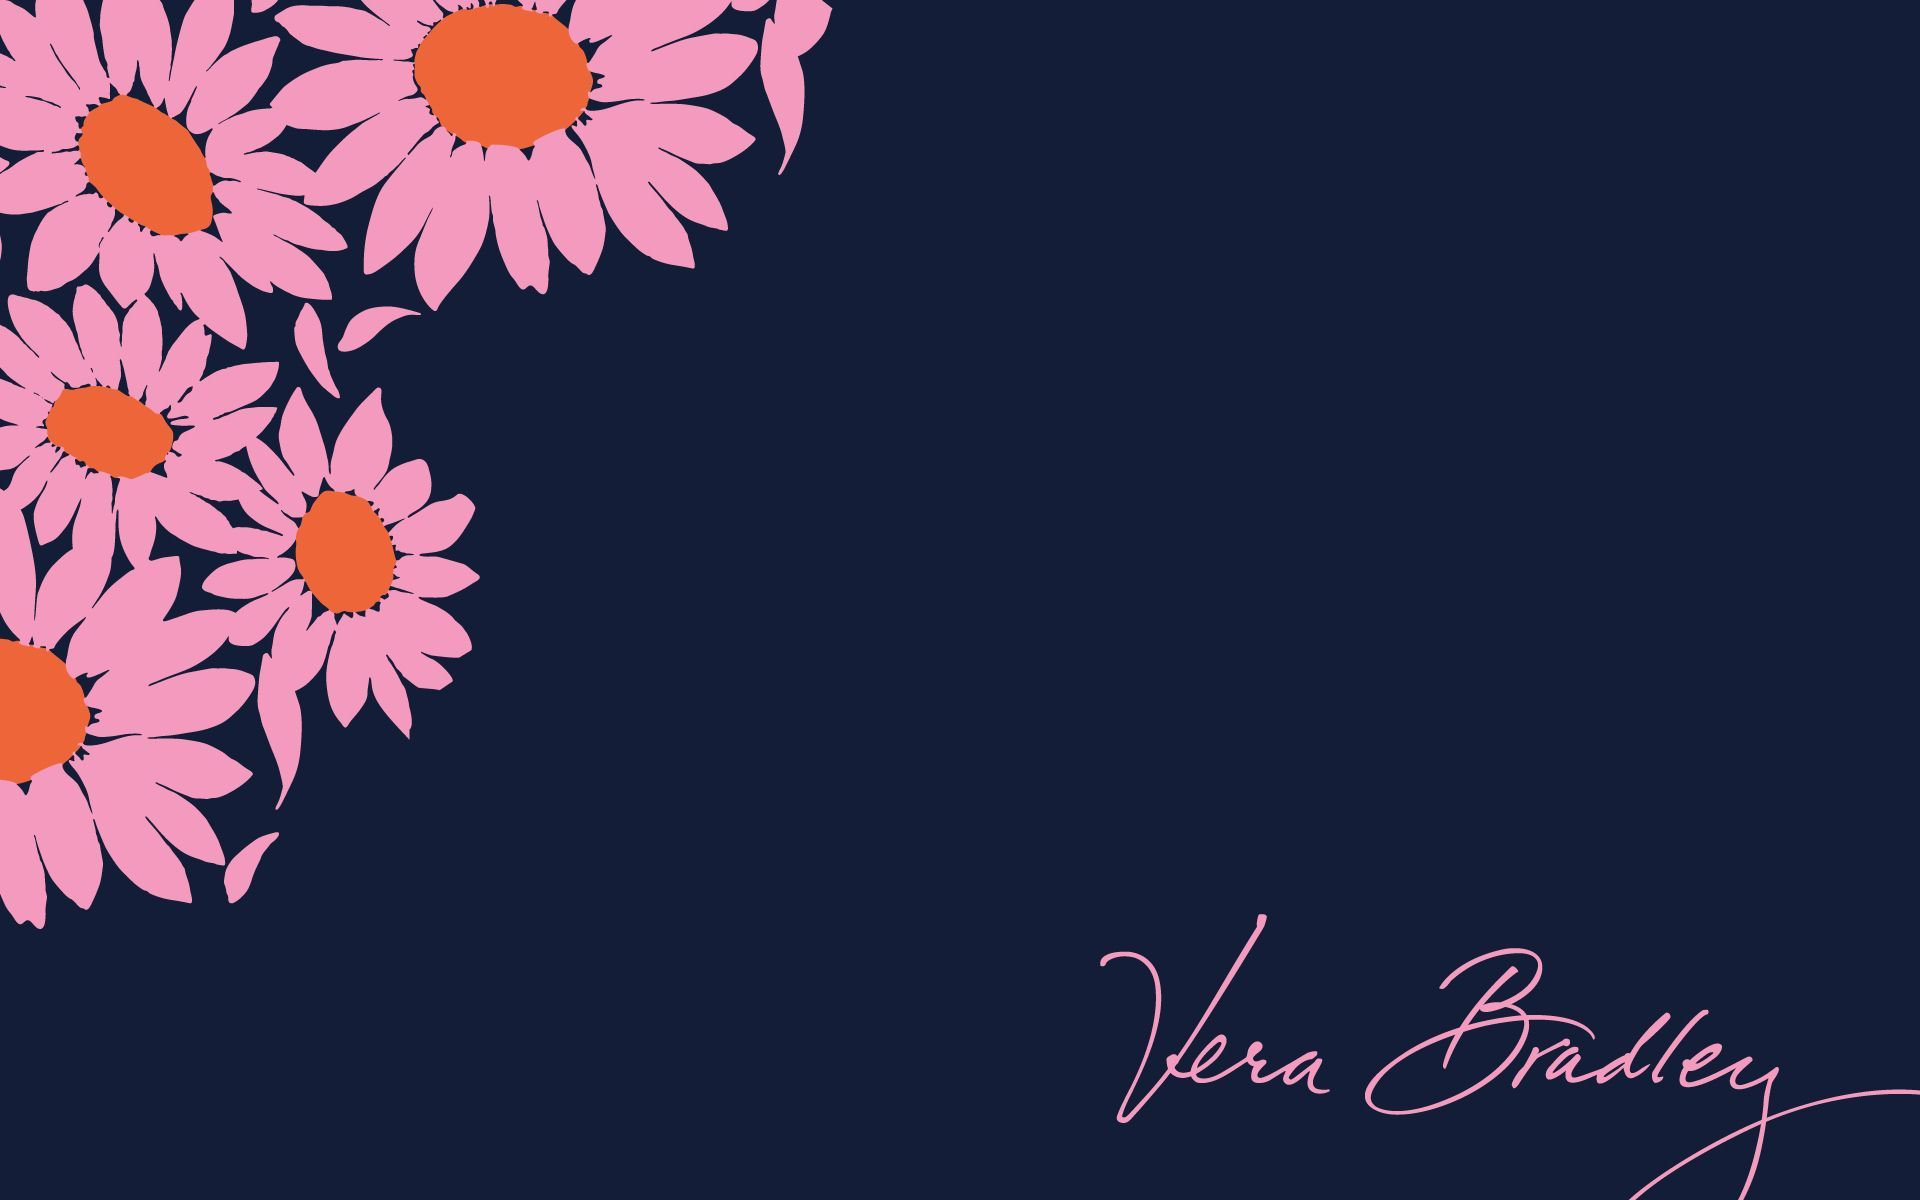 vera bradley loves me desktop wallpaper